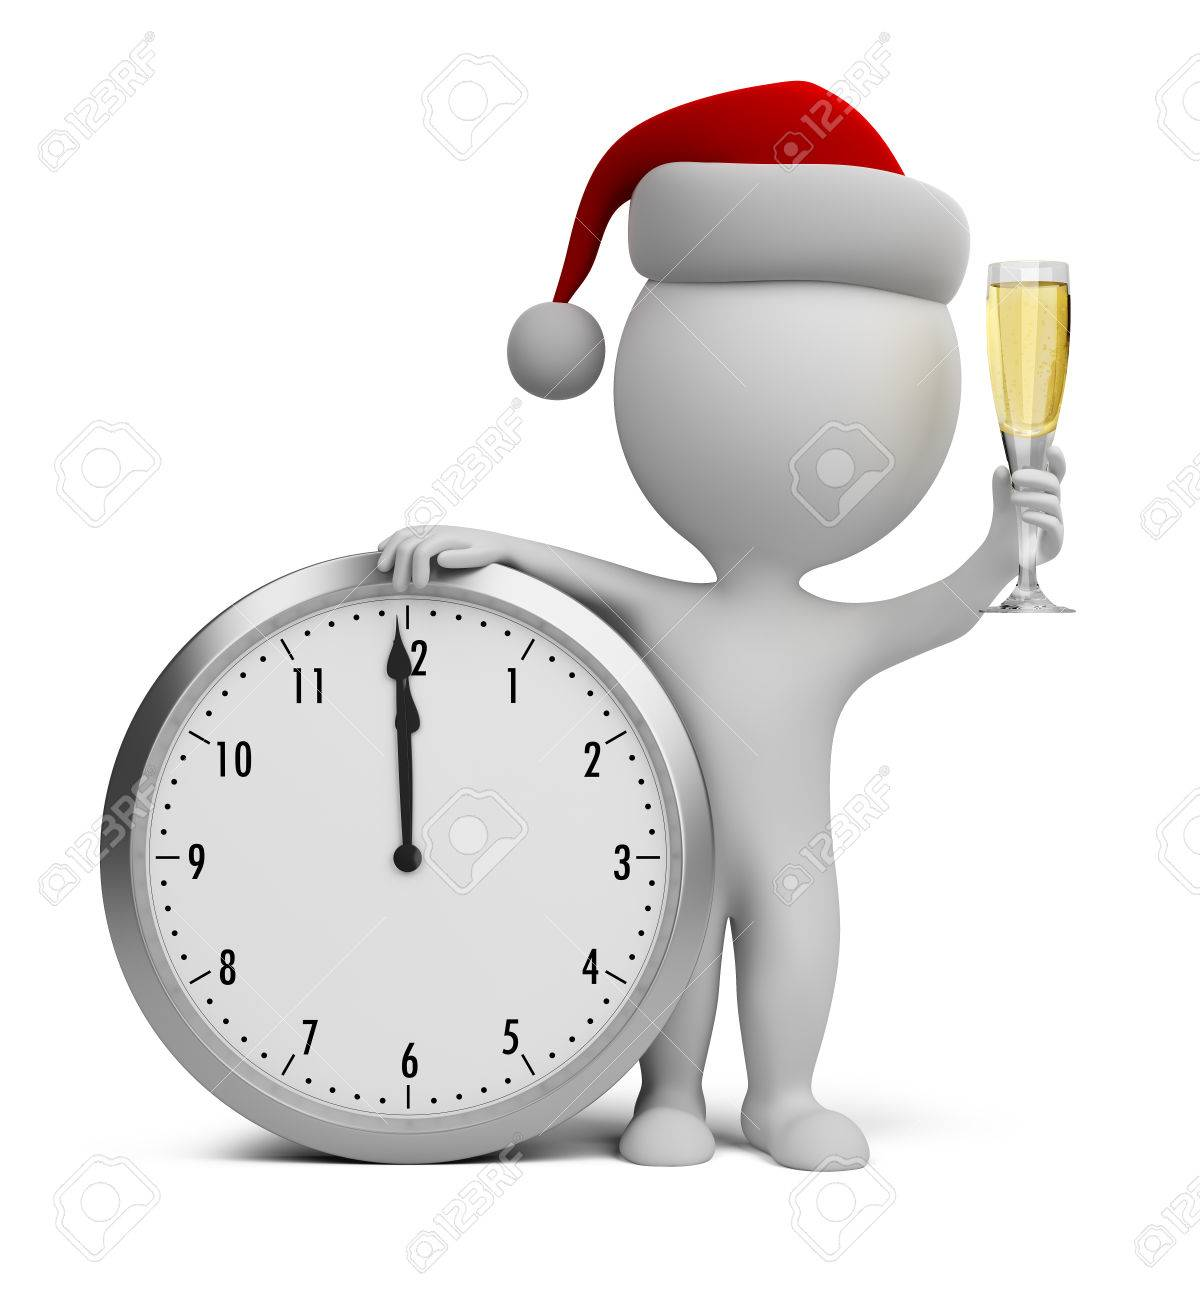 3d small person - Santa with a glass of champagne next to the clock  3d image Stock Photo - 24561294